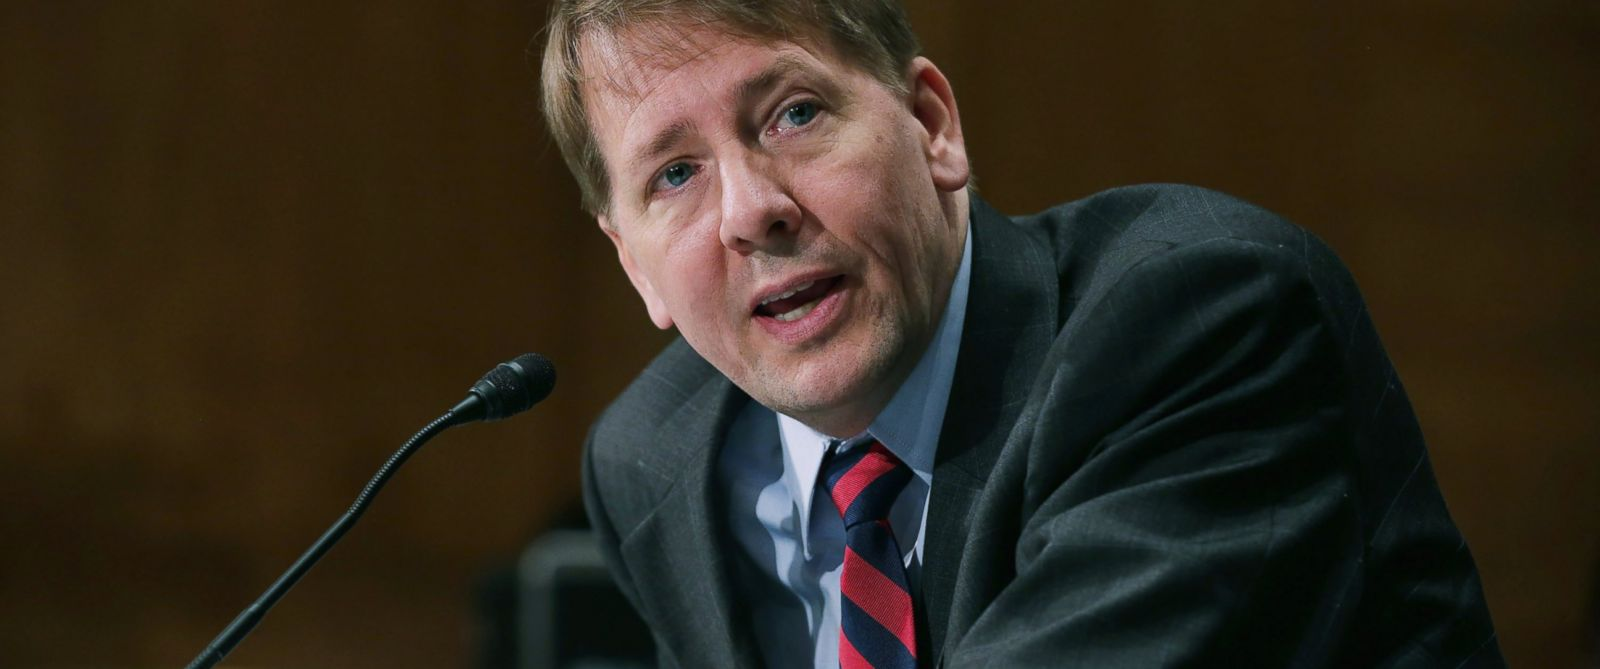 PHOTO: Consumer Financial Protection Bureau Director Richard Cordray testifies before the Senate Banking, Housing and Urban Affairs Committee on Capitol Hill, June 10, 2014 in Washington, DC.